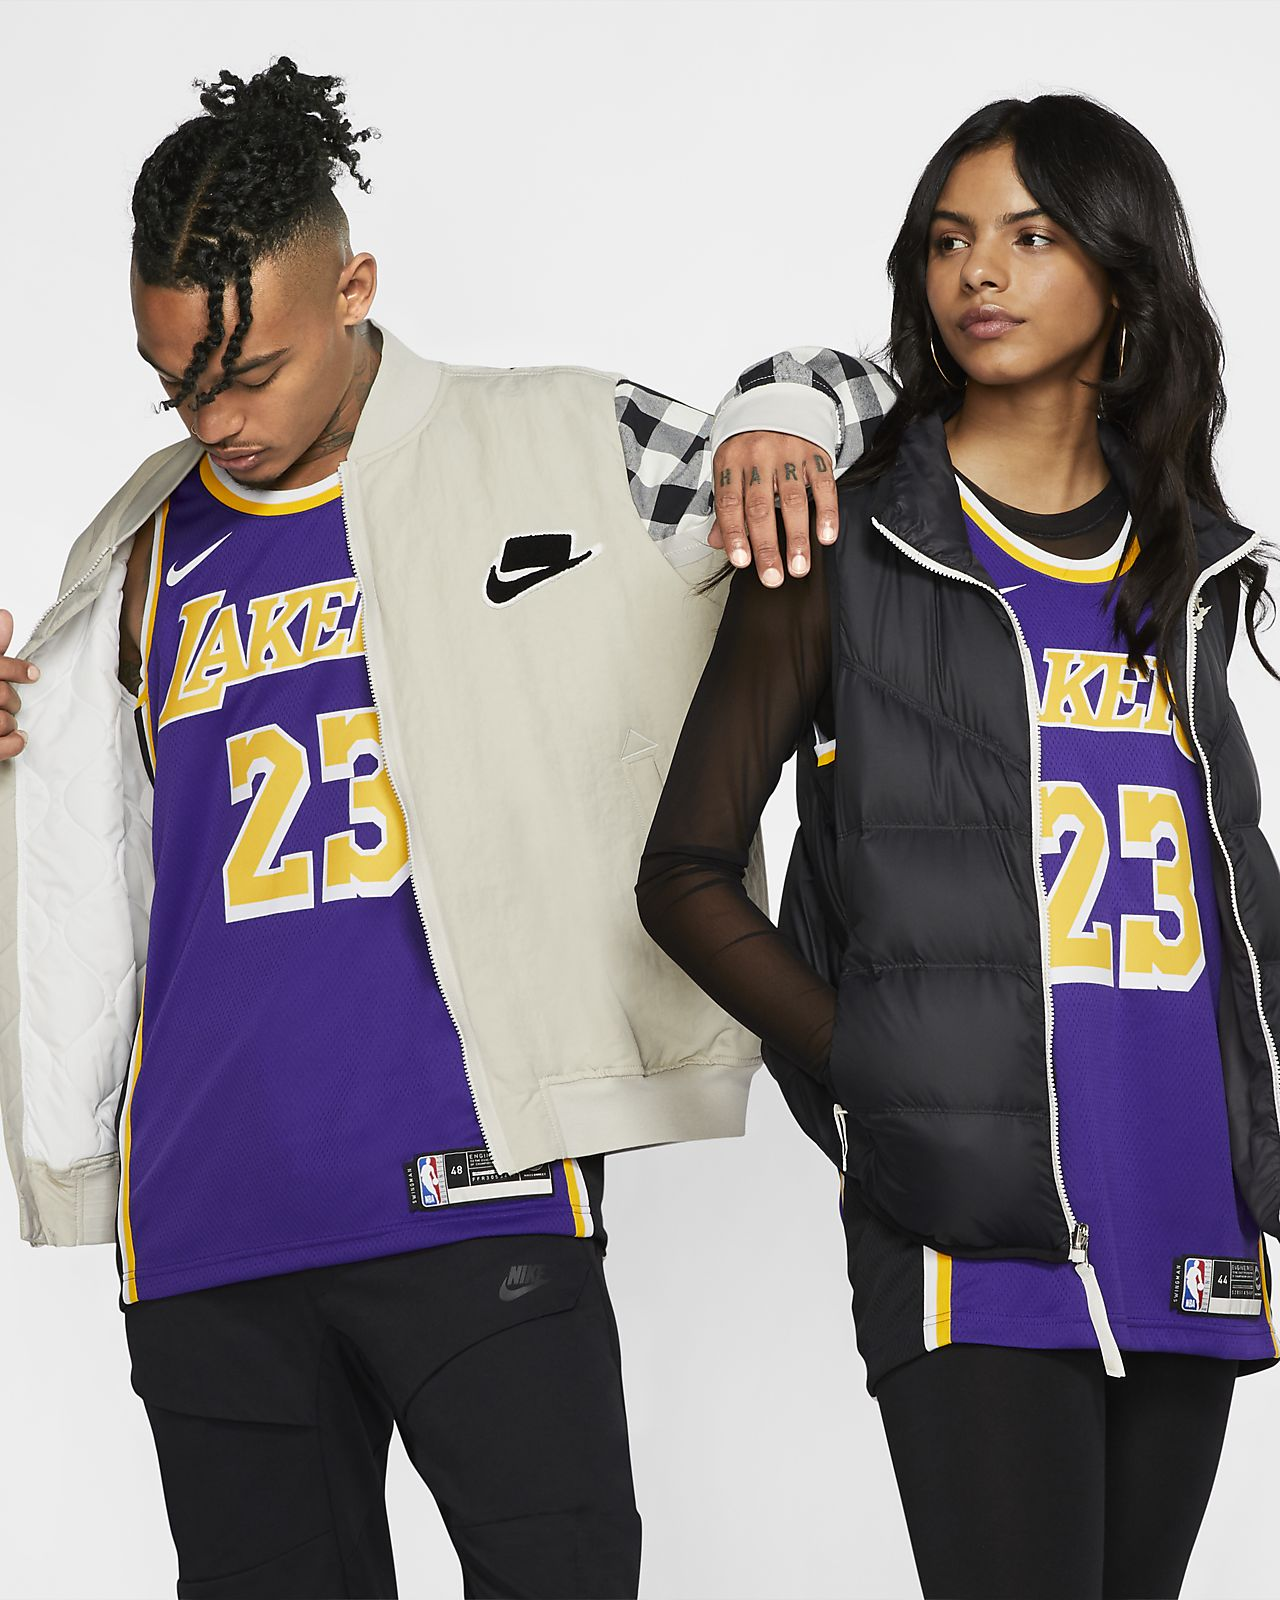 Pánský dres Nike NBA Connected LeBron James Statement Edition Swingman (Los Angeles Lakers)